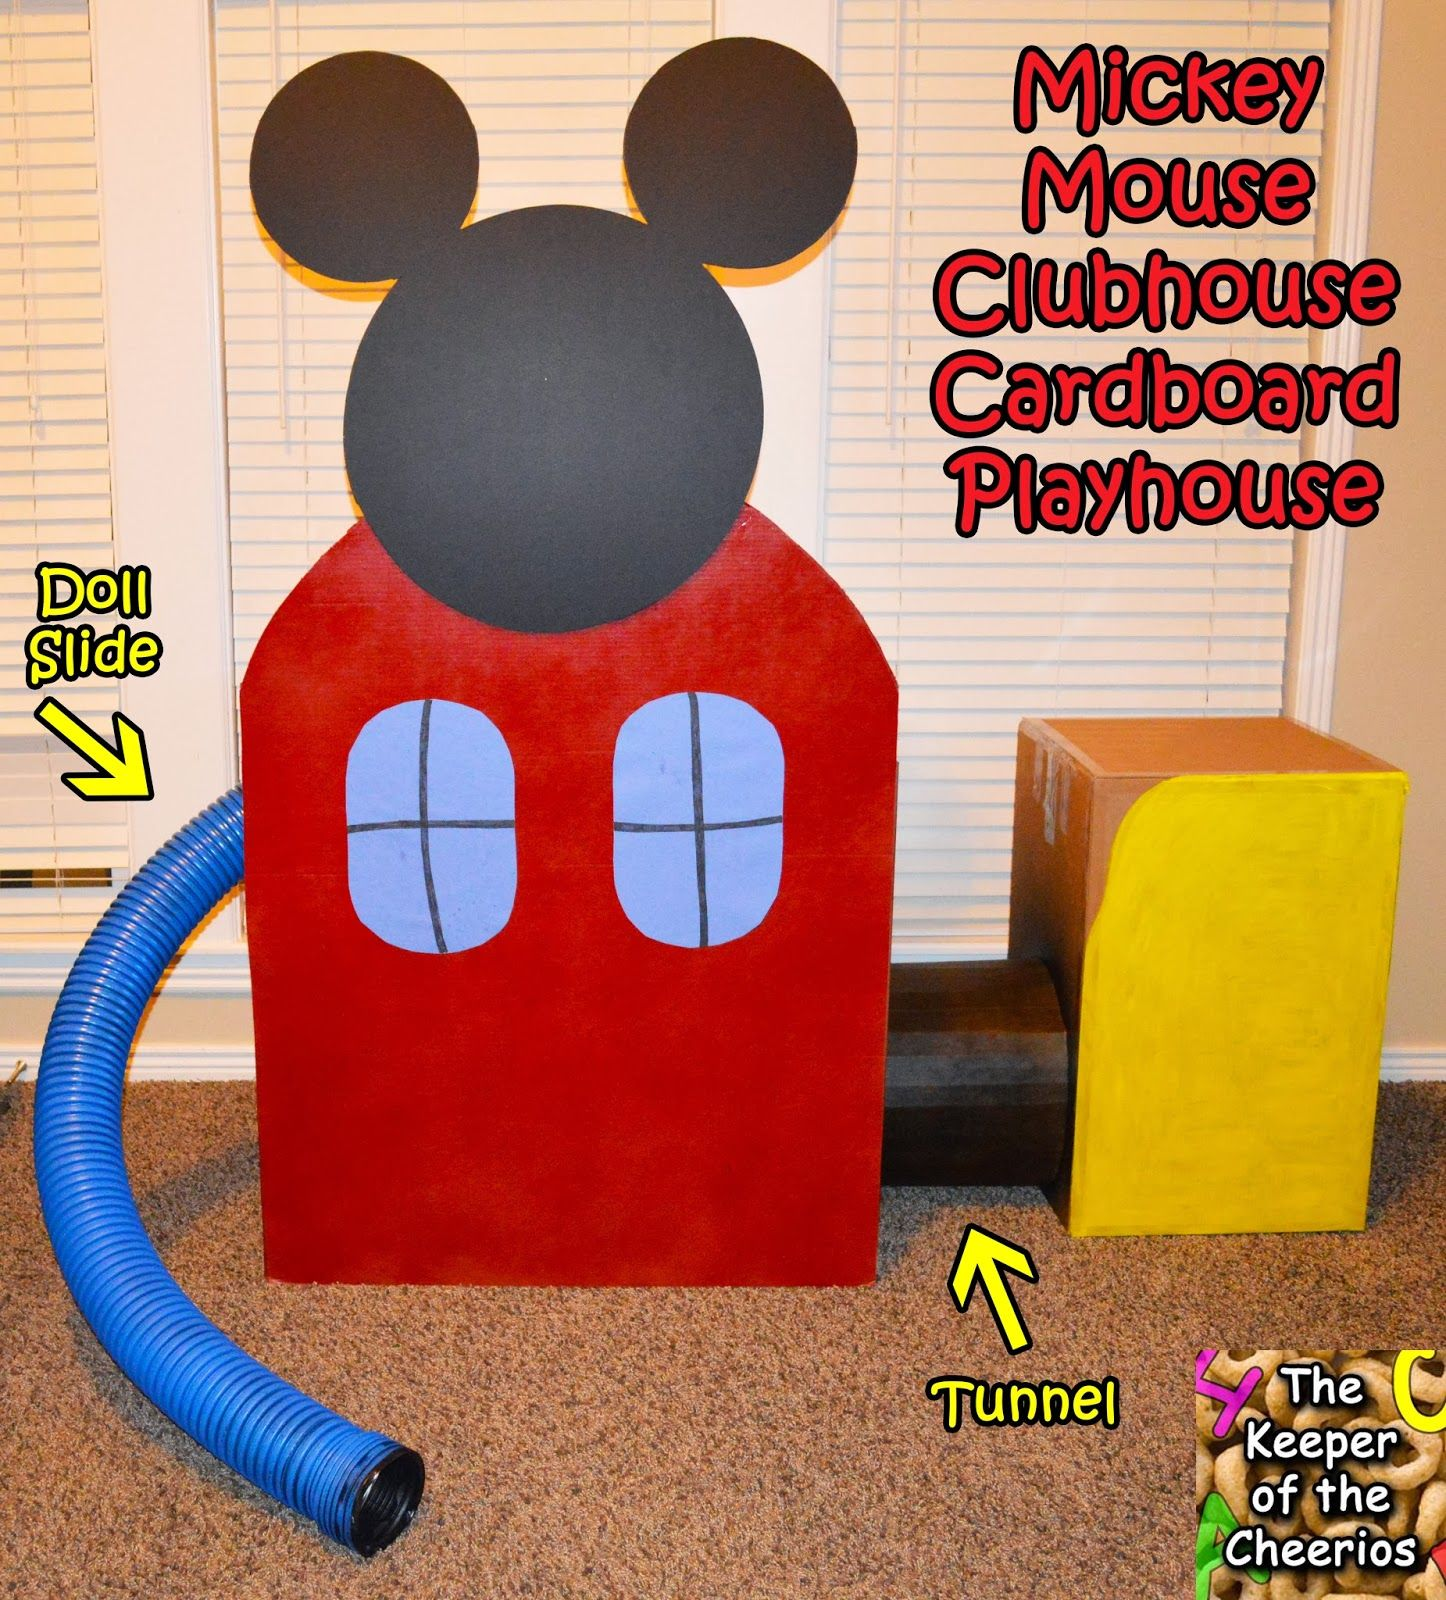 Mickey Mouse Clubhouse Bedroom Furniture Mickey Mouse Clubhouse Cardboard Playhouse Life Size Playhouse